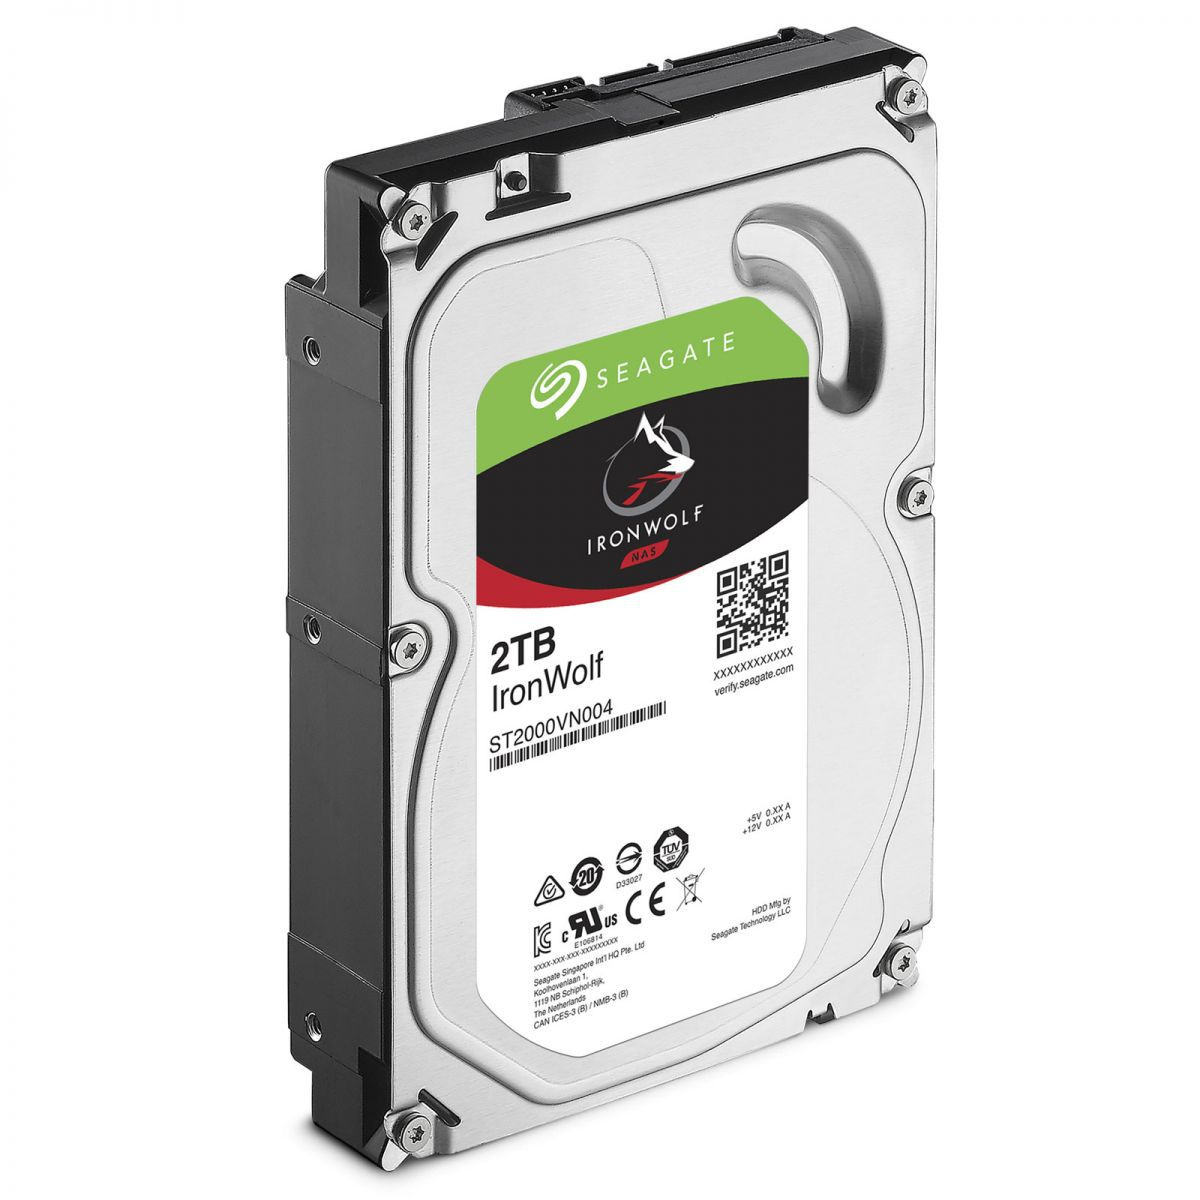 HD Seagate IronWolf NAS HDD 2TB  - Rei dos HDs